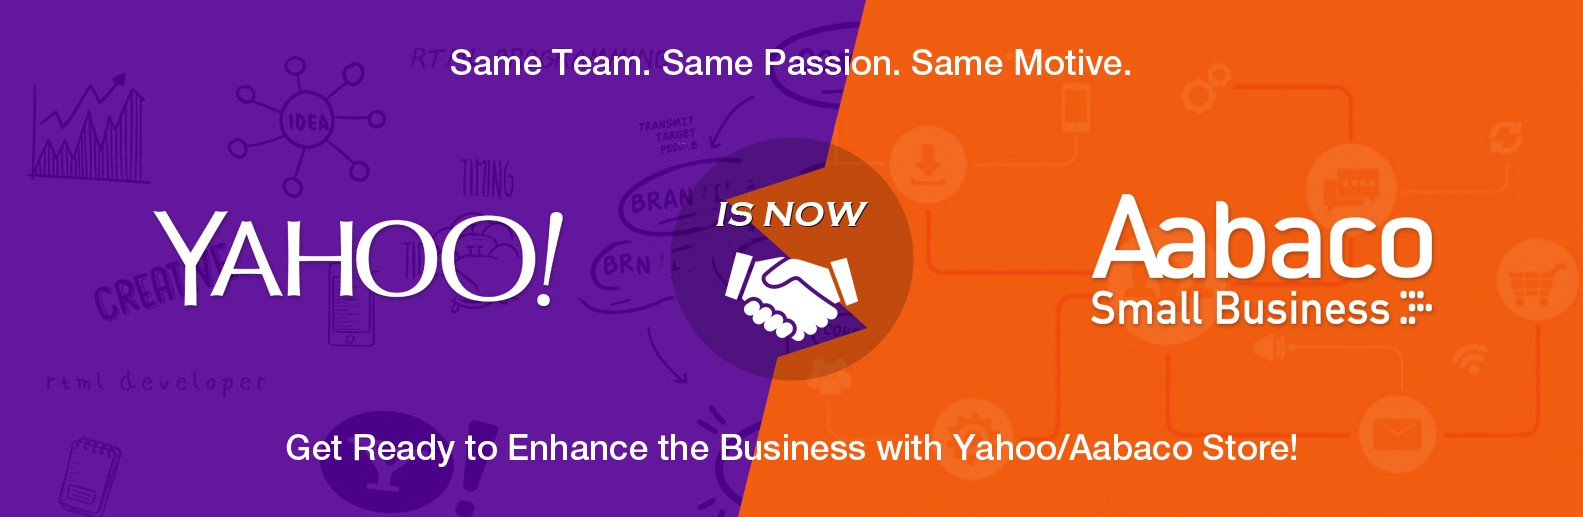 Trying to Reach Aabaco Small Business Services from Yahoo and Can't?